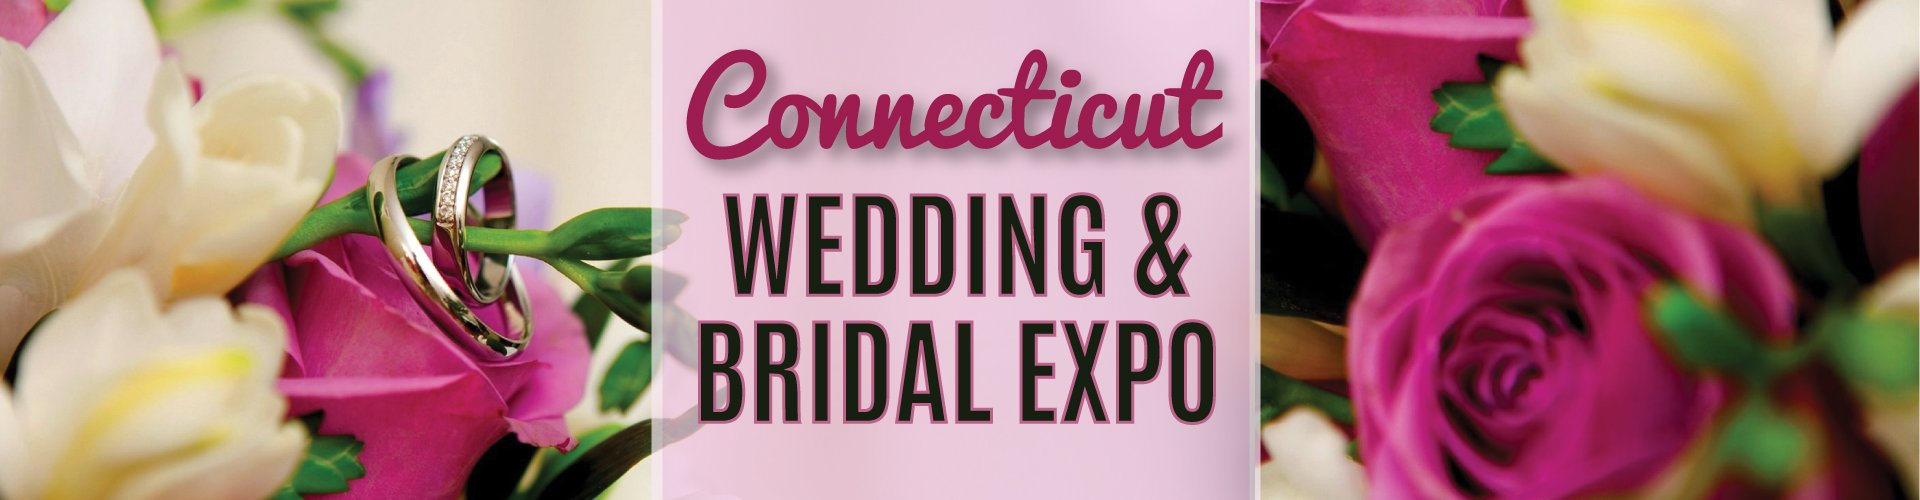 Connecticut Bridal Expo